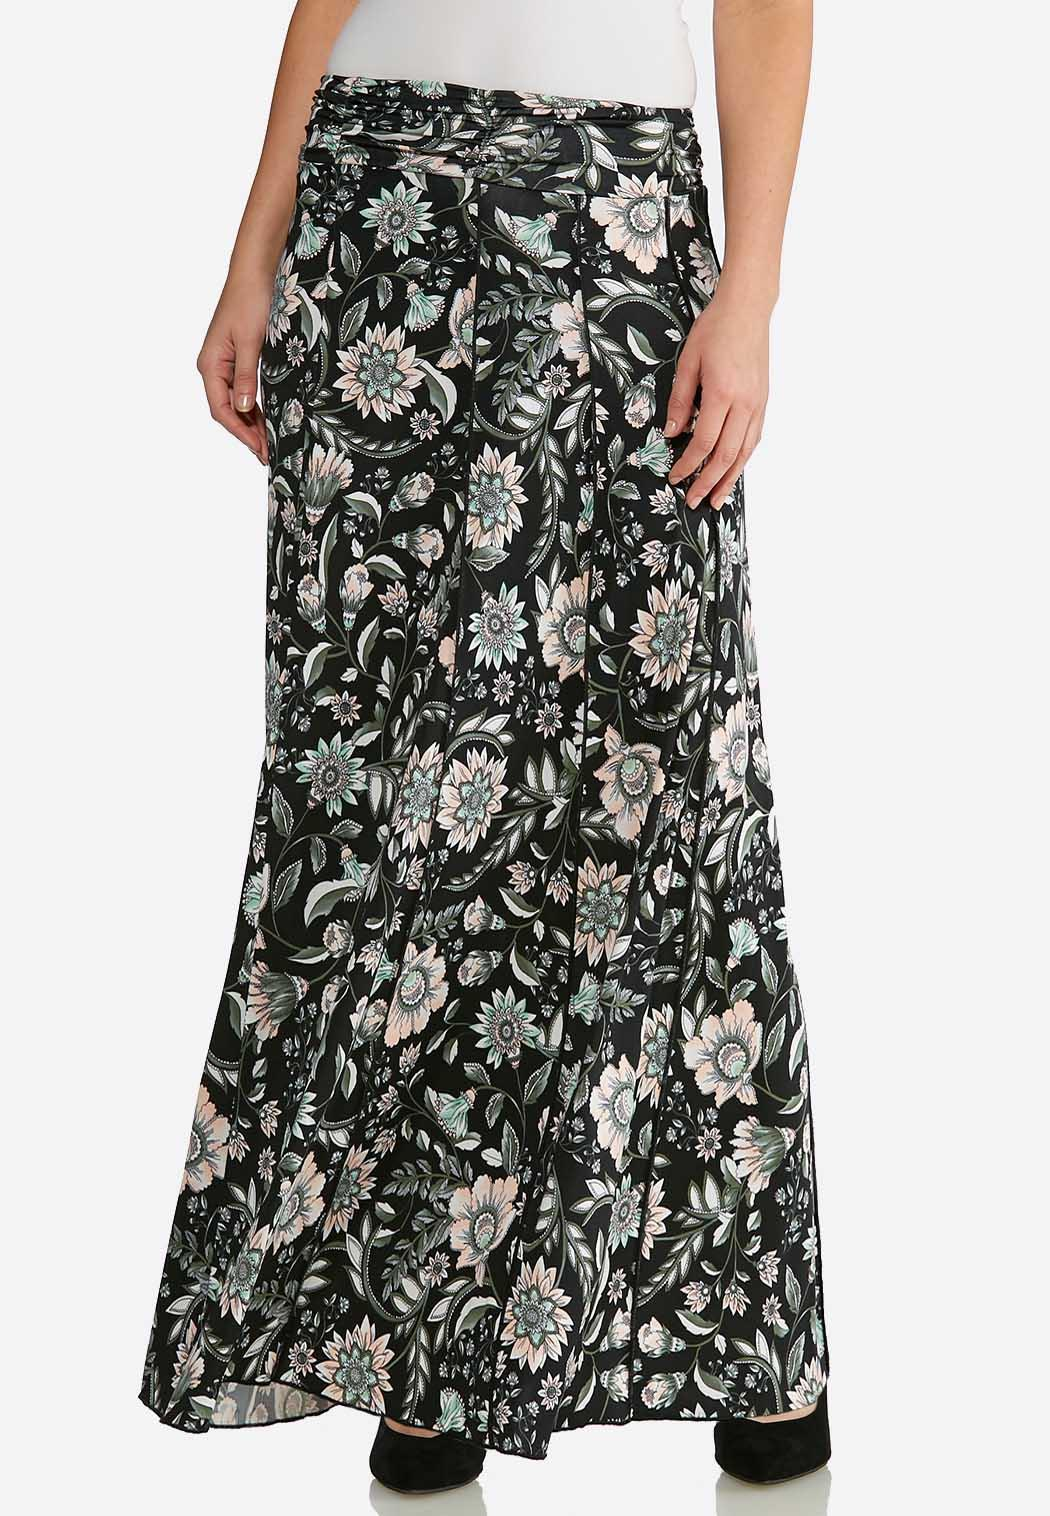 df92519fb3 Seamed Floral Maxi Skirt alternate view Seamed Floral Maxi Skirt